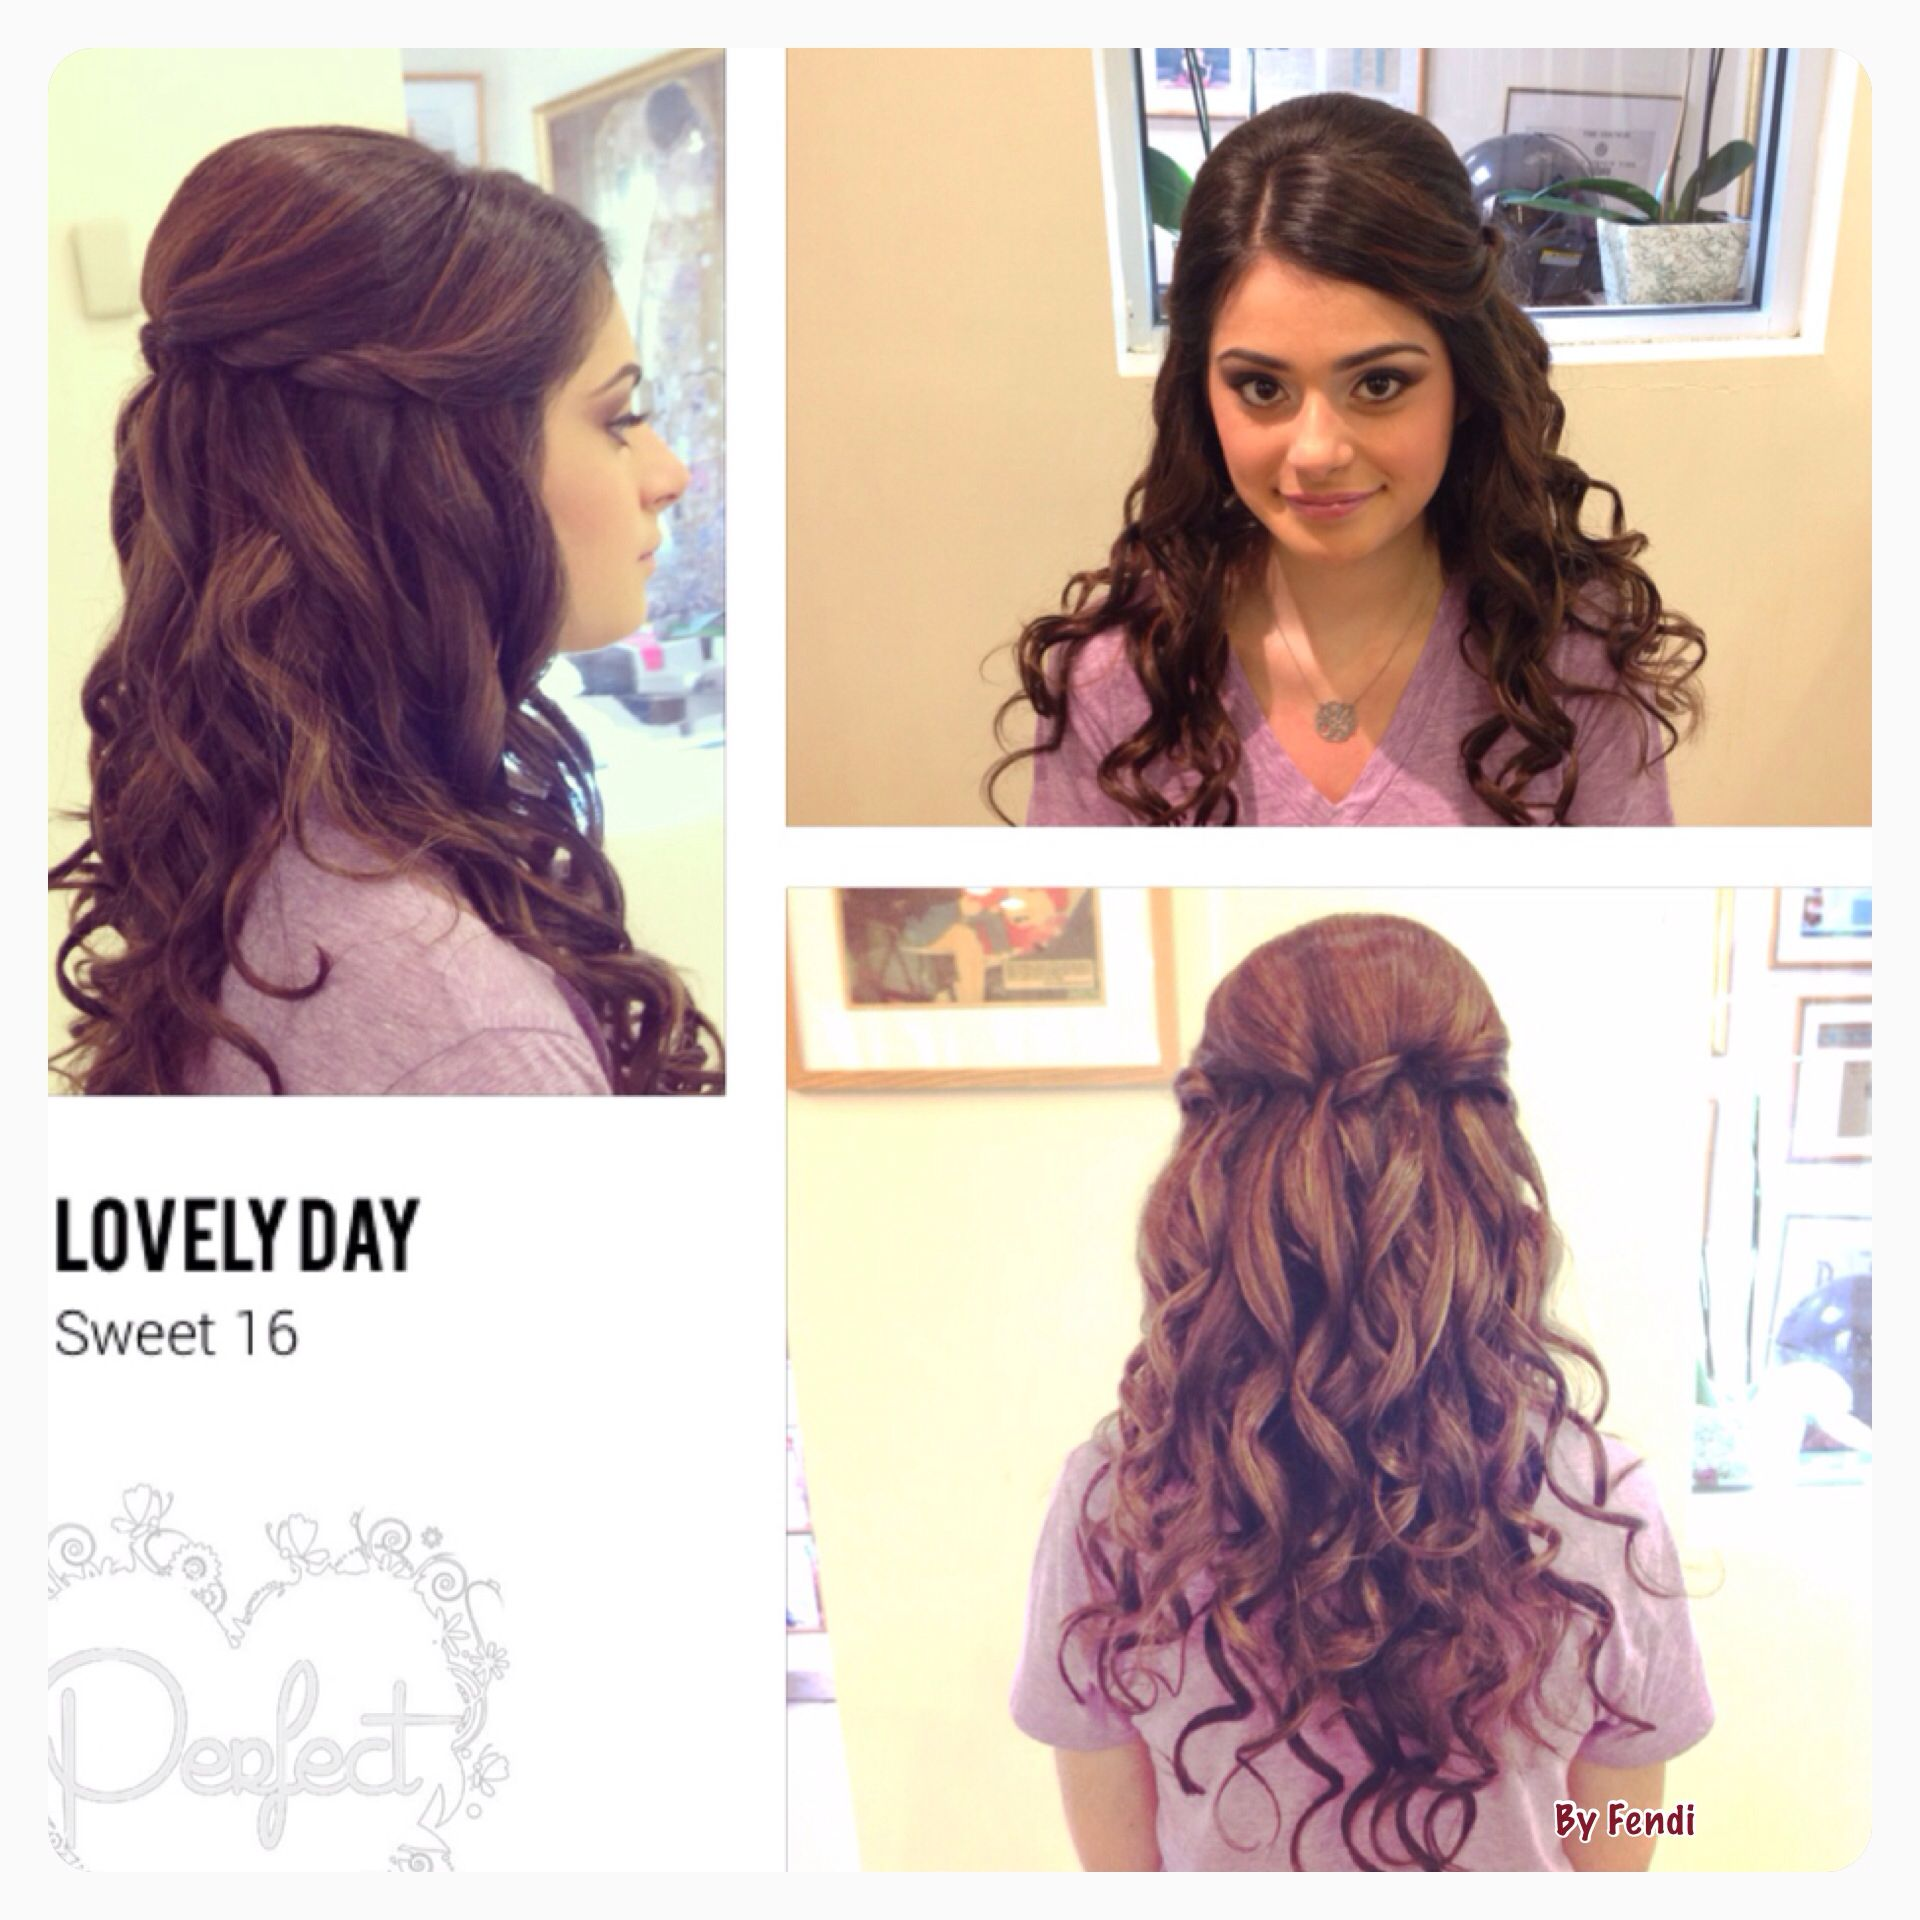 sweet 16 hairstyle